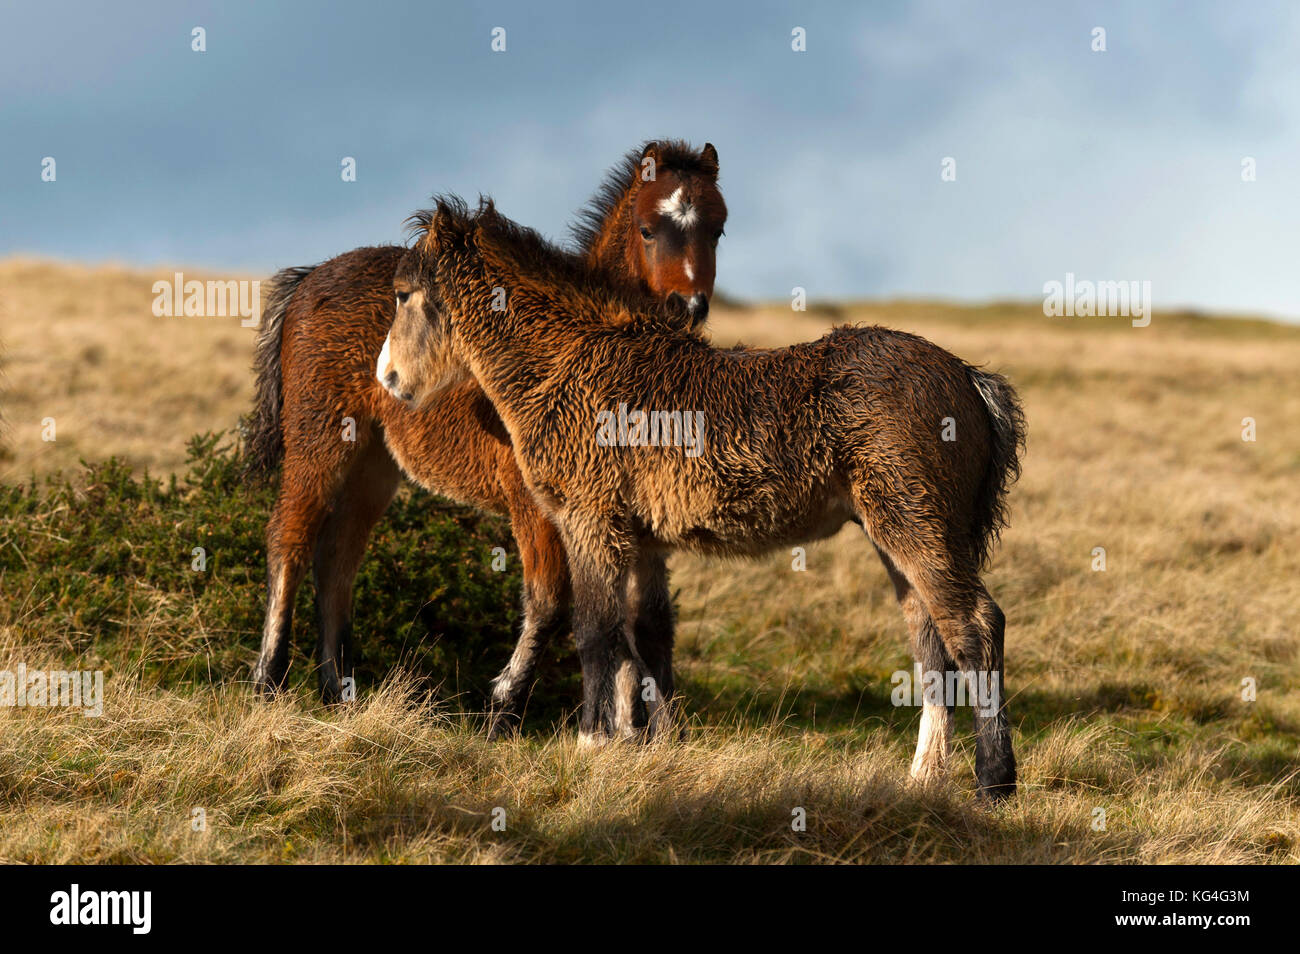 Builth Wells, Powys, Wales, UK. 4th November, 2017. Two Welsh pony foals, bedraggled by a shower, huddle together - Stock Image